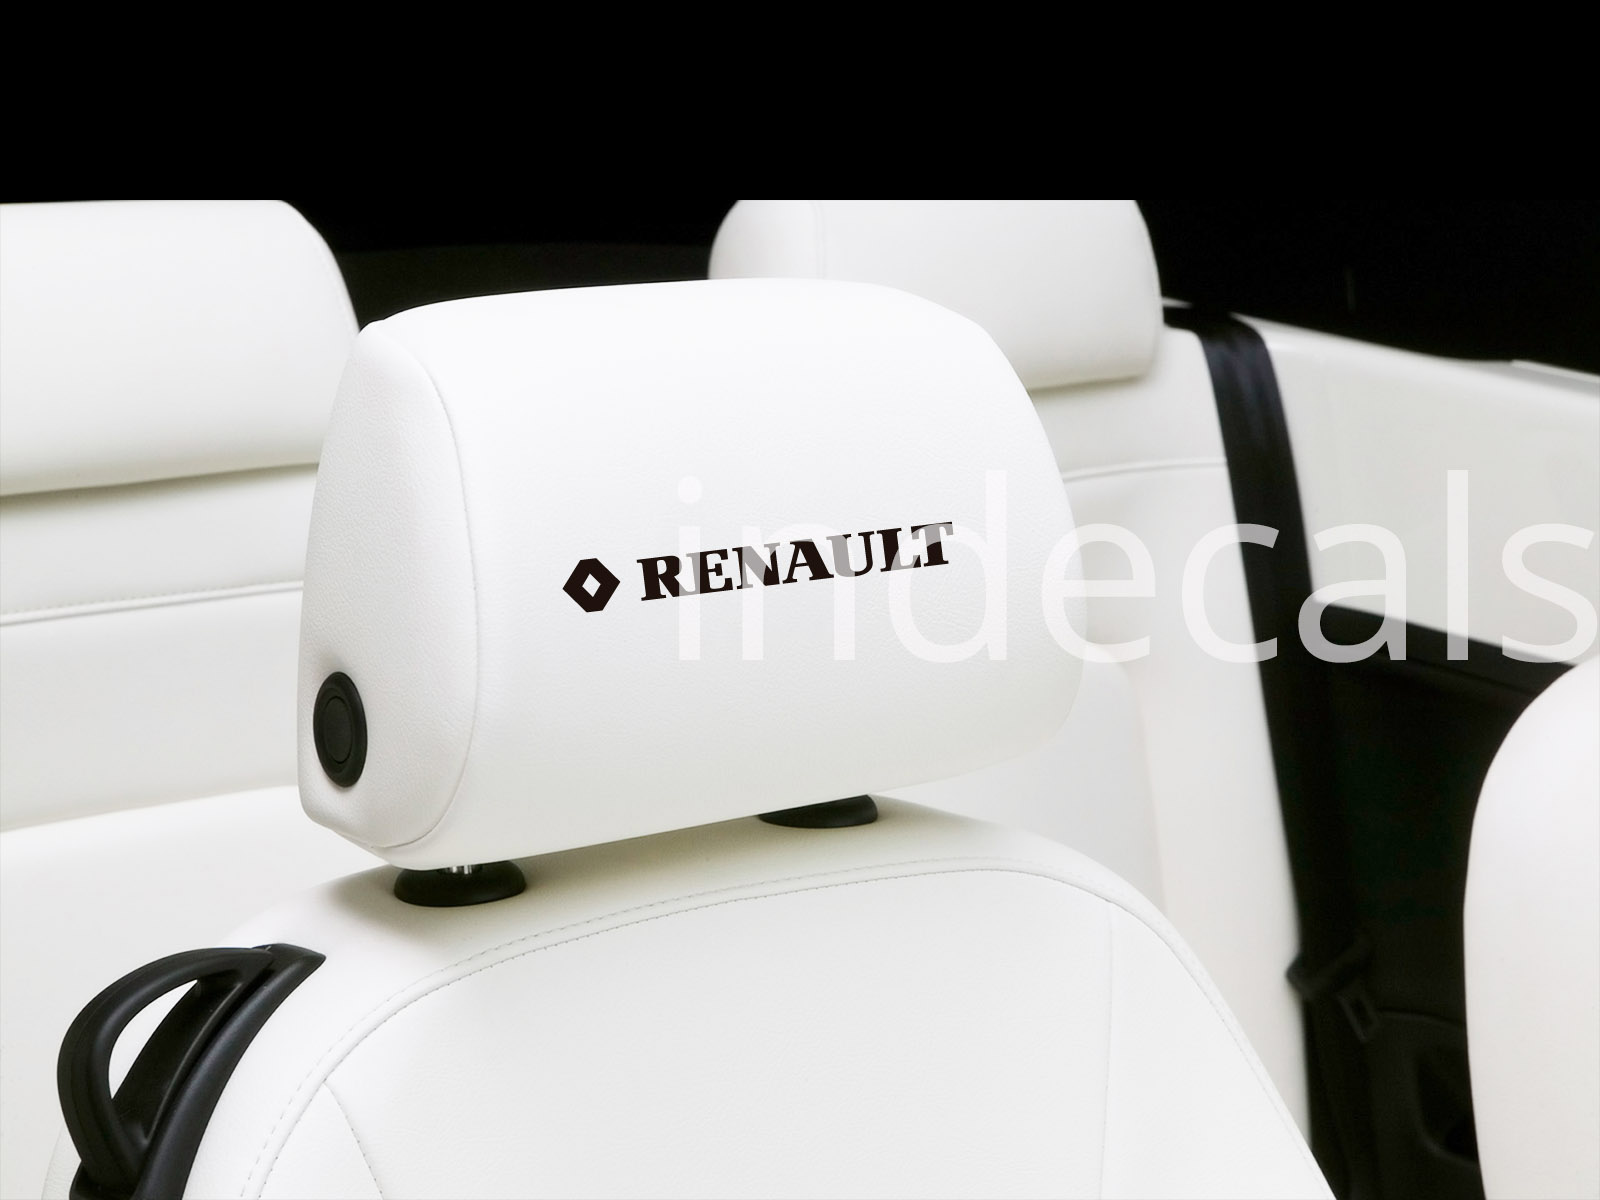 6 x Renault Stickers for Headrests - Black